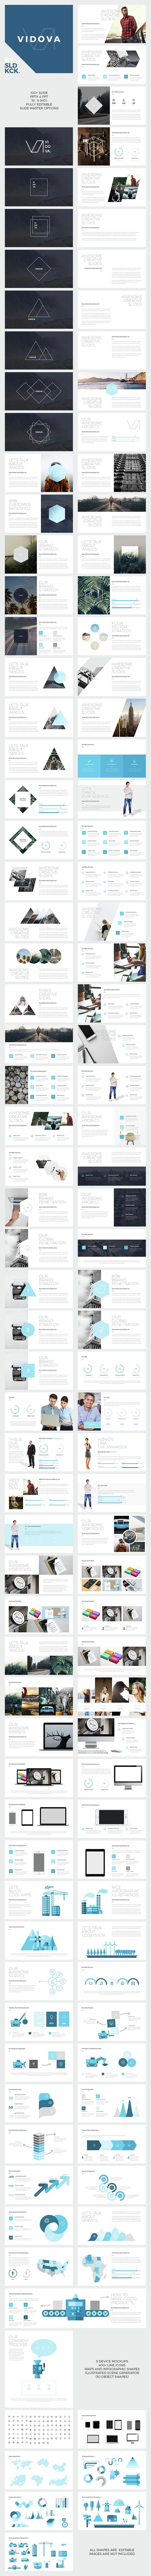 Vidova modern powerpoint presentation powerpoint templates hotsite vidova modern powerpoint presentation powerpoint templates toneelgroepblik Image collections